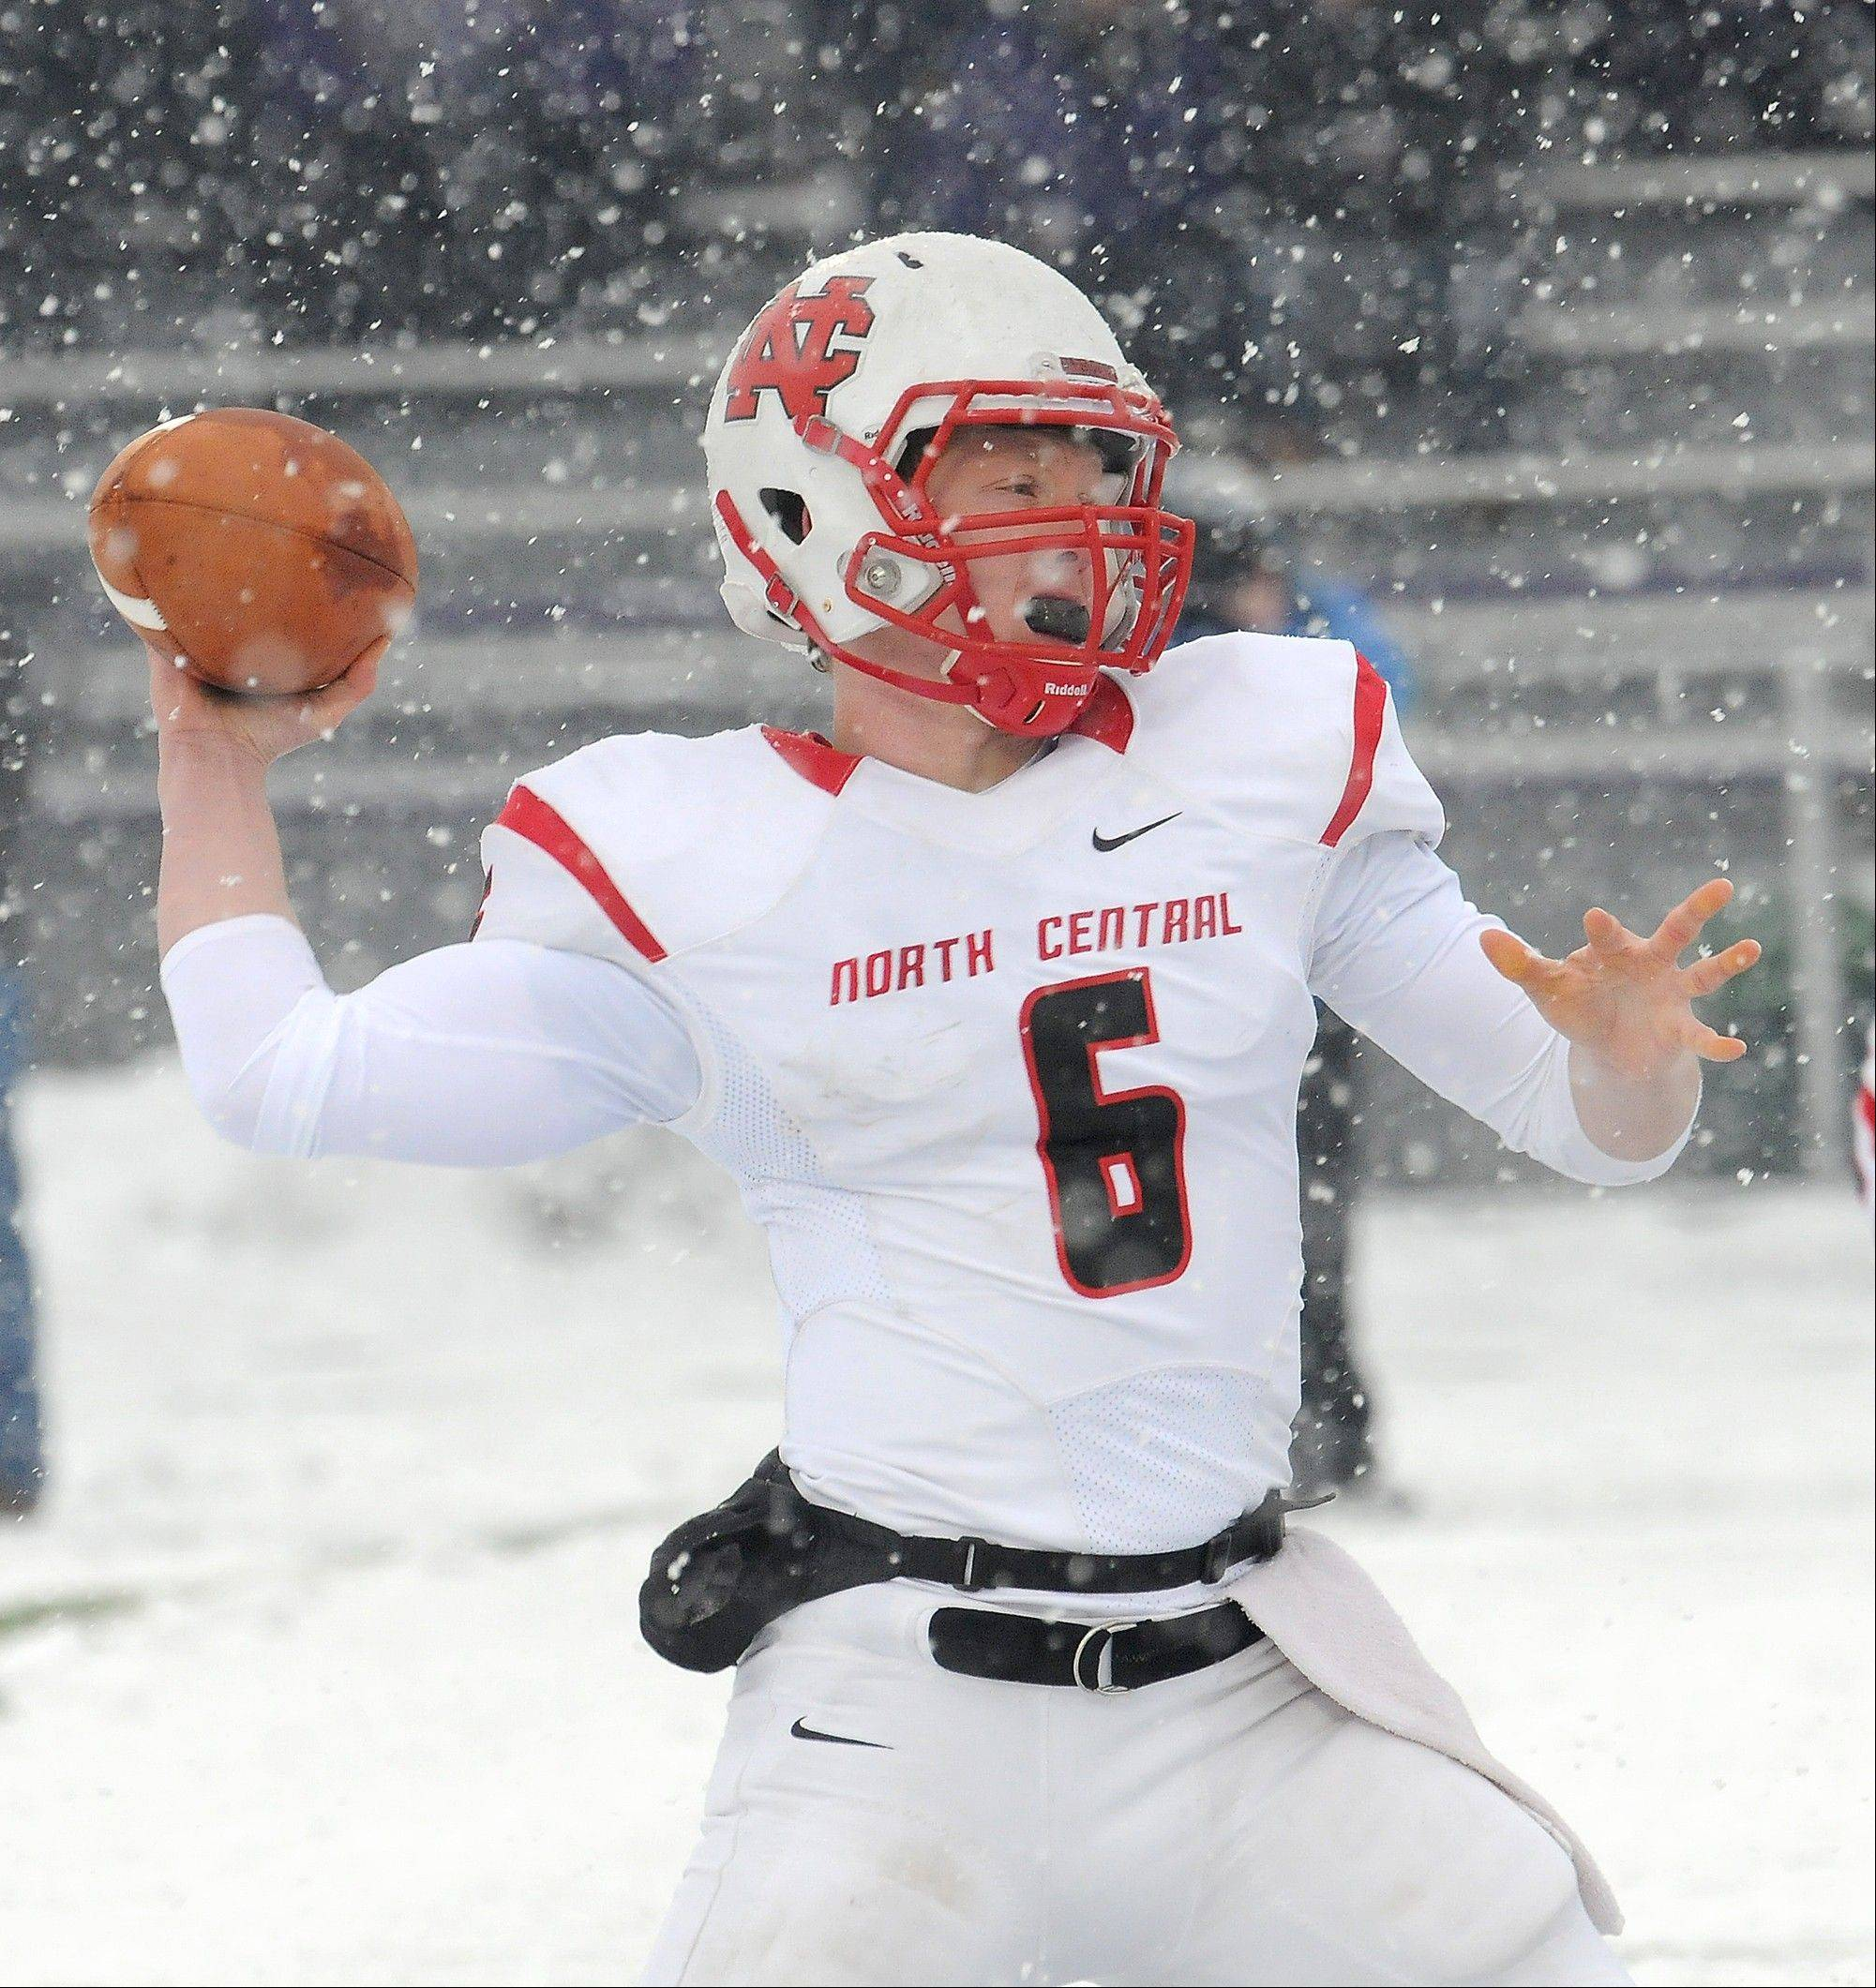 North Central quarterback Spencer Stanek throws to a receiver against Mount Union Saturday in Ohio. Mount Union won 41-40.